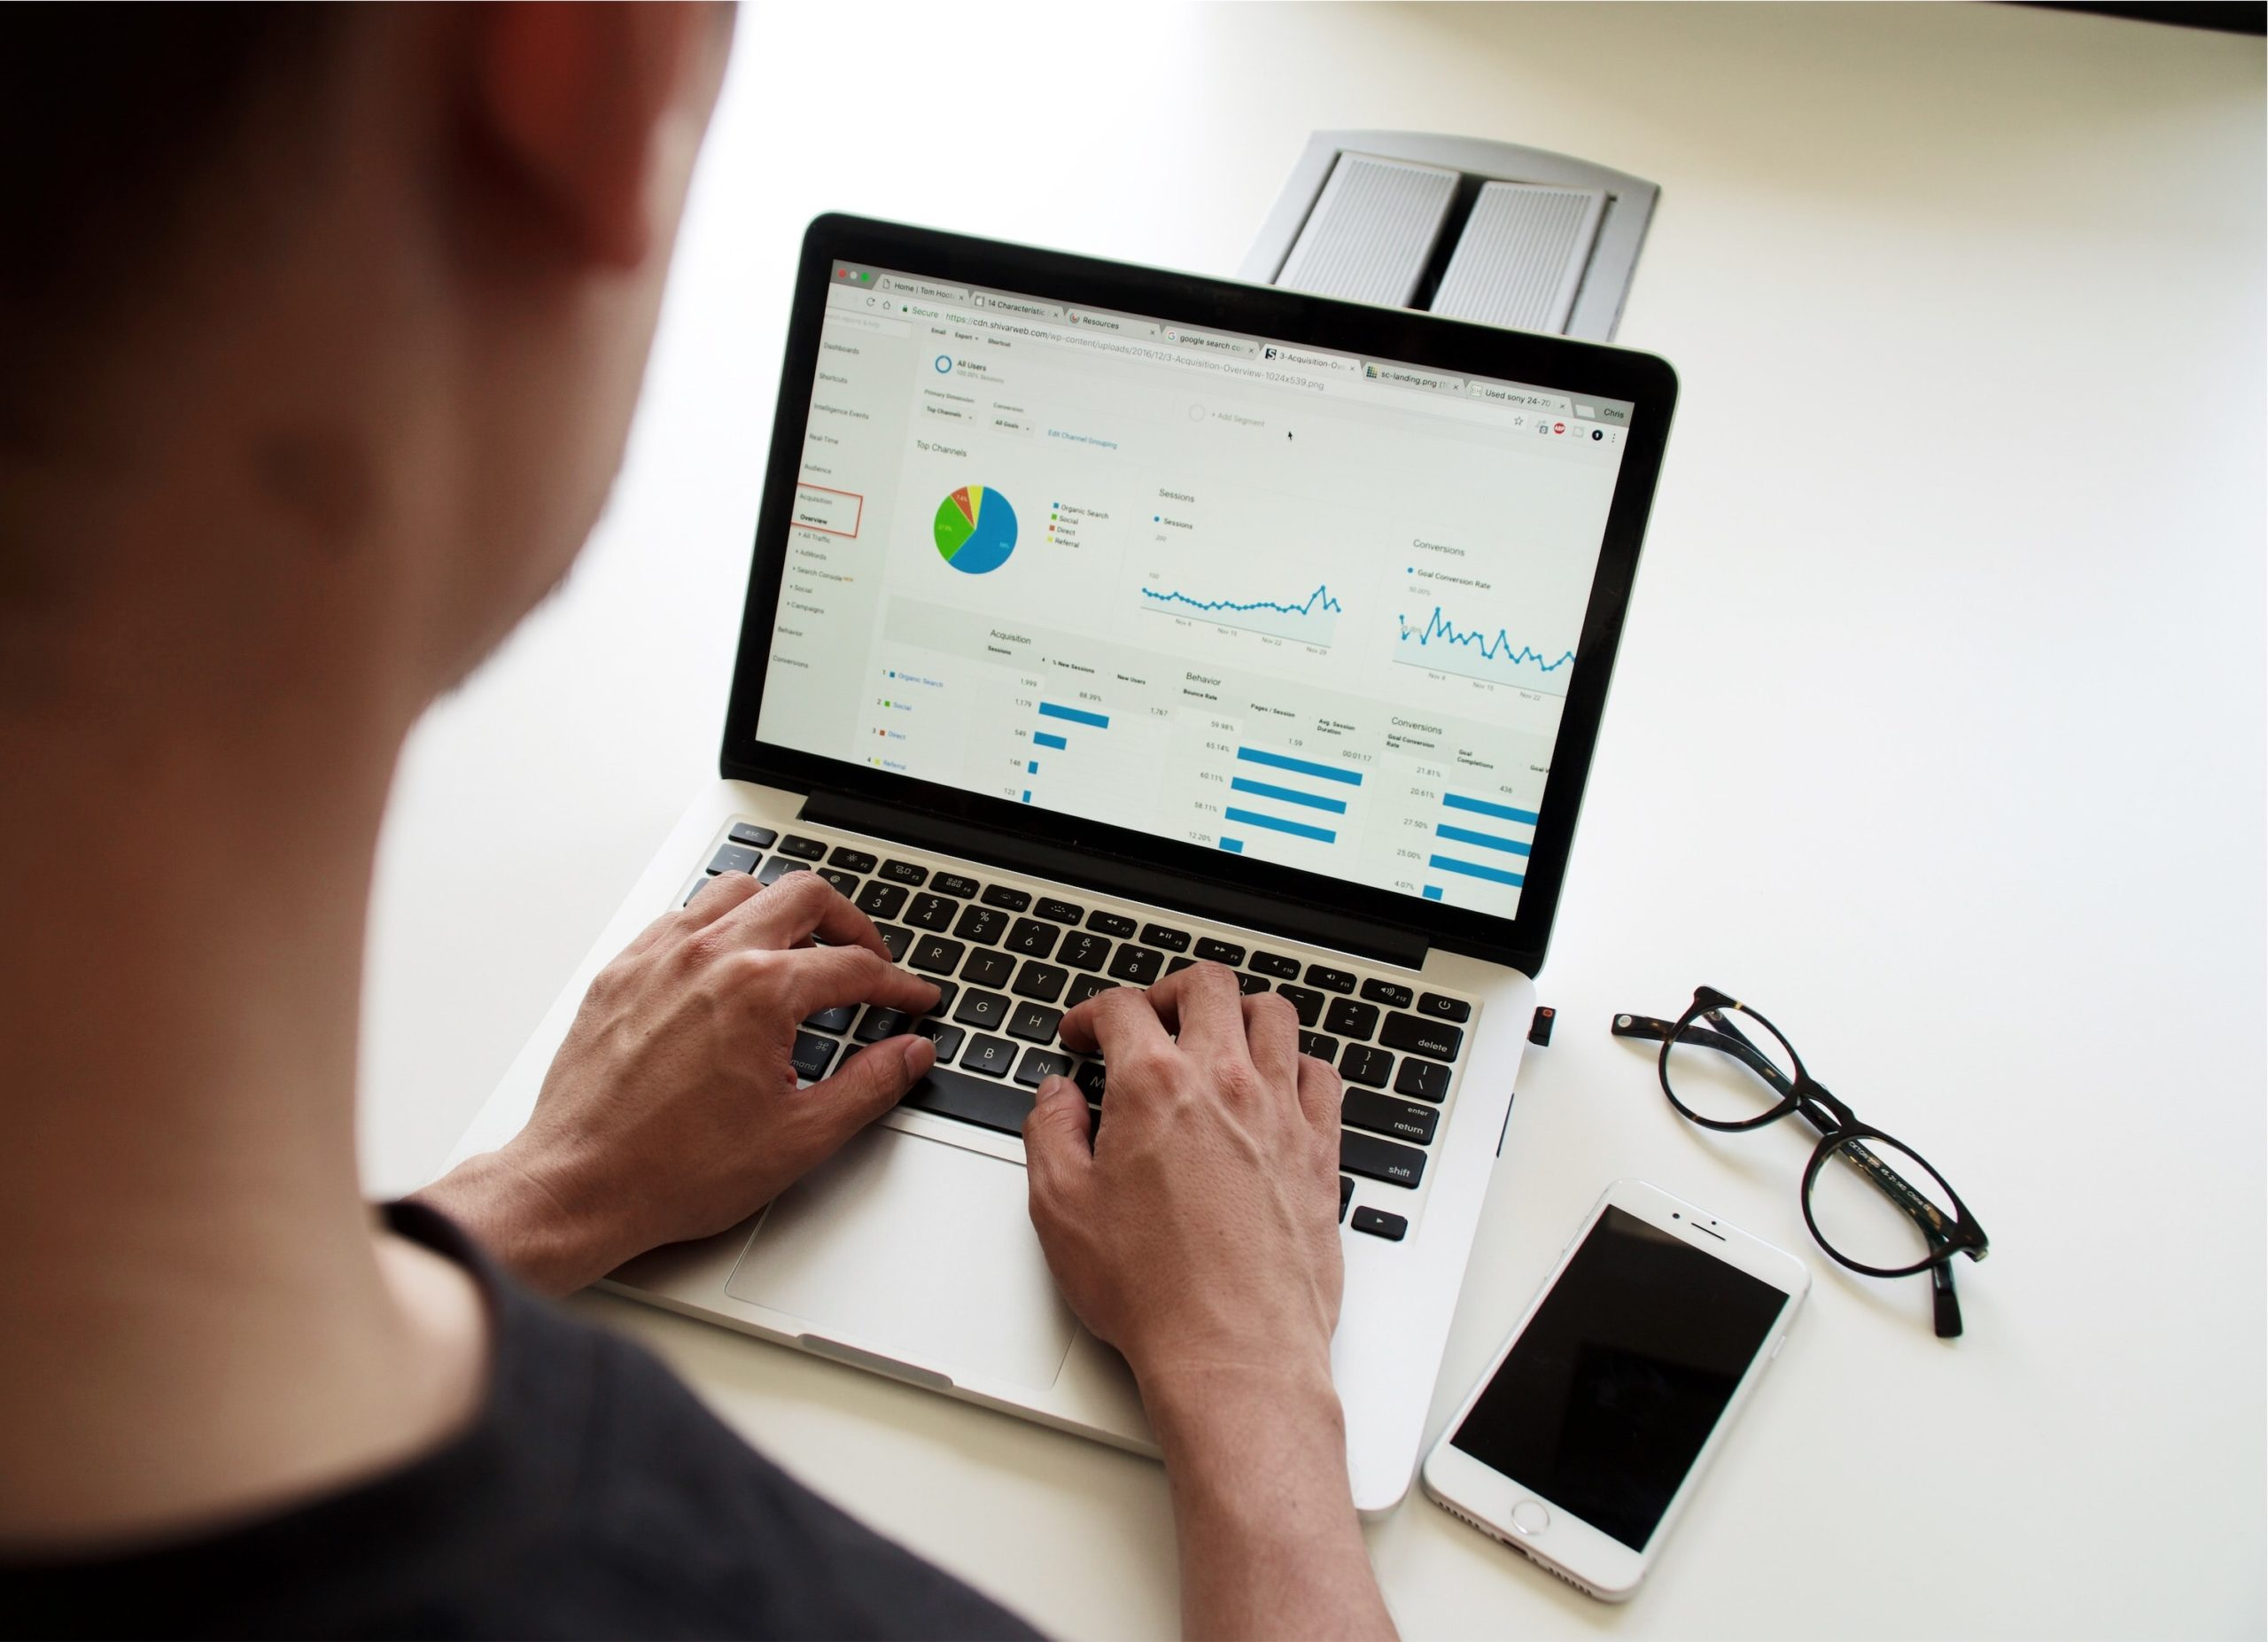 Limitations of Using Google Analytics Goals to Track Marketing Results